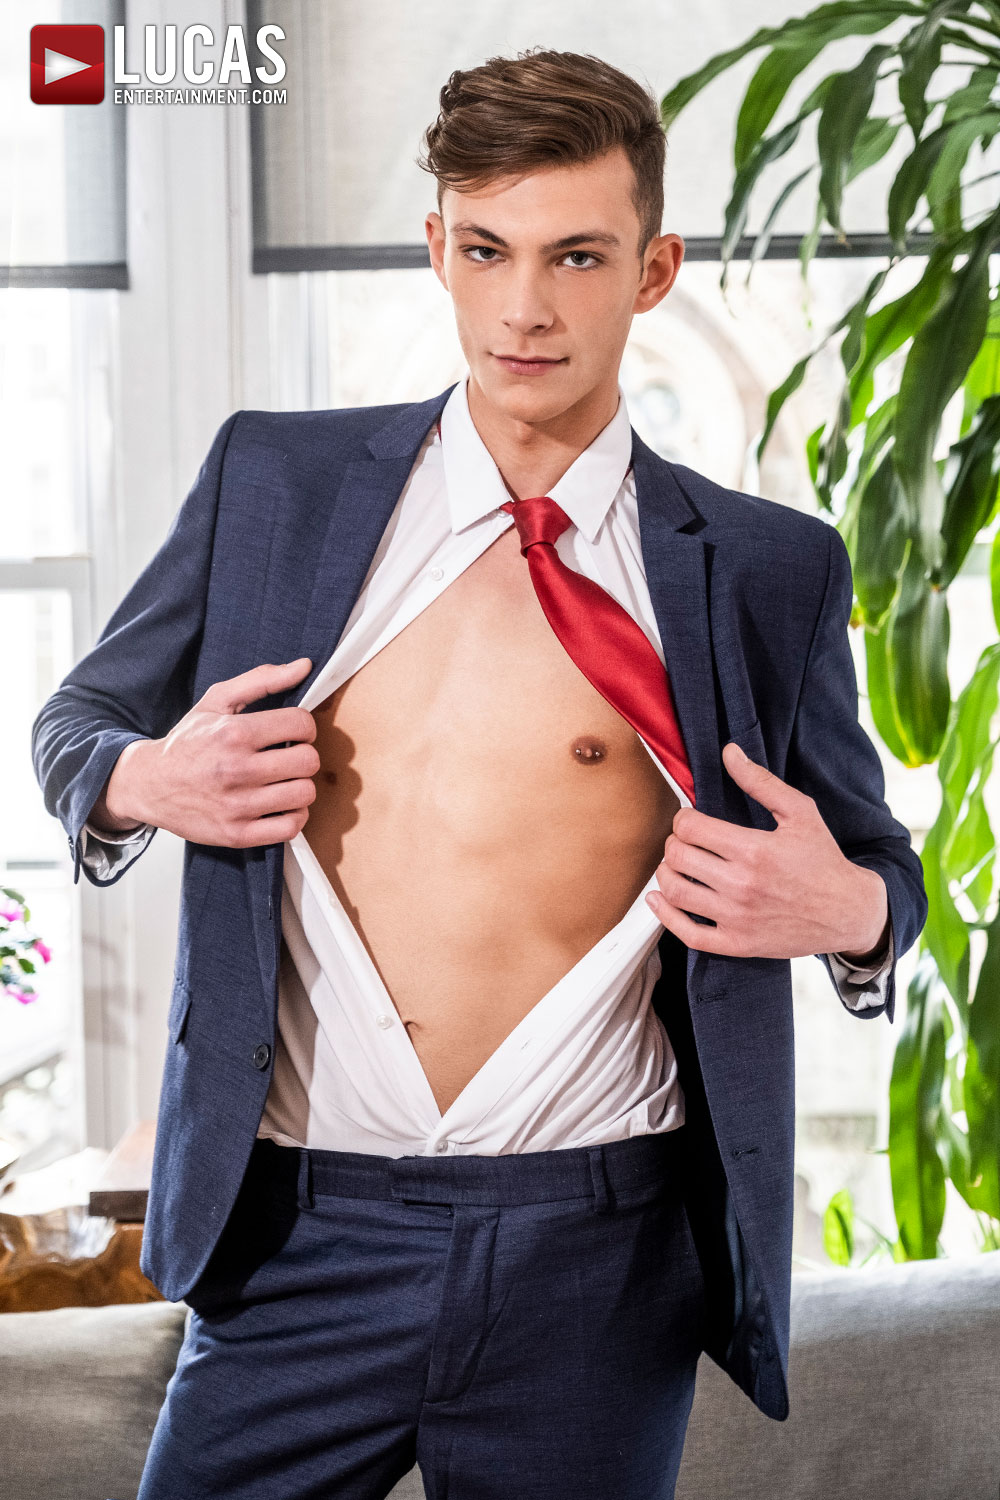 Braxton Boyd - Gay Model - Lucas Entertainment